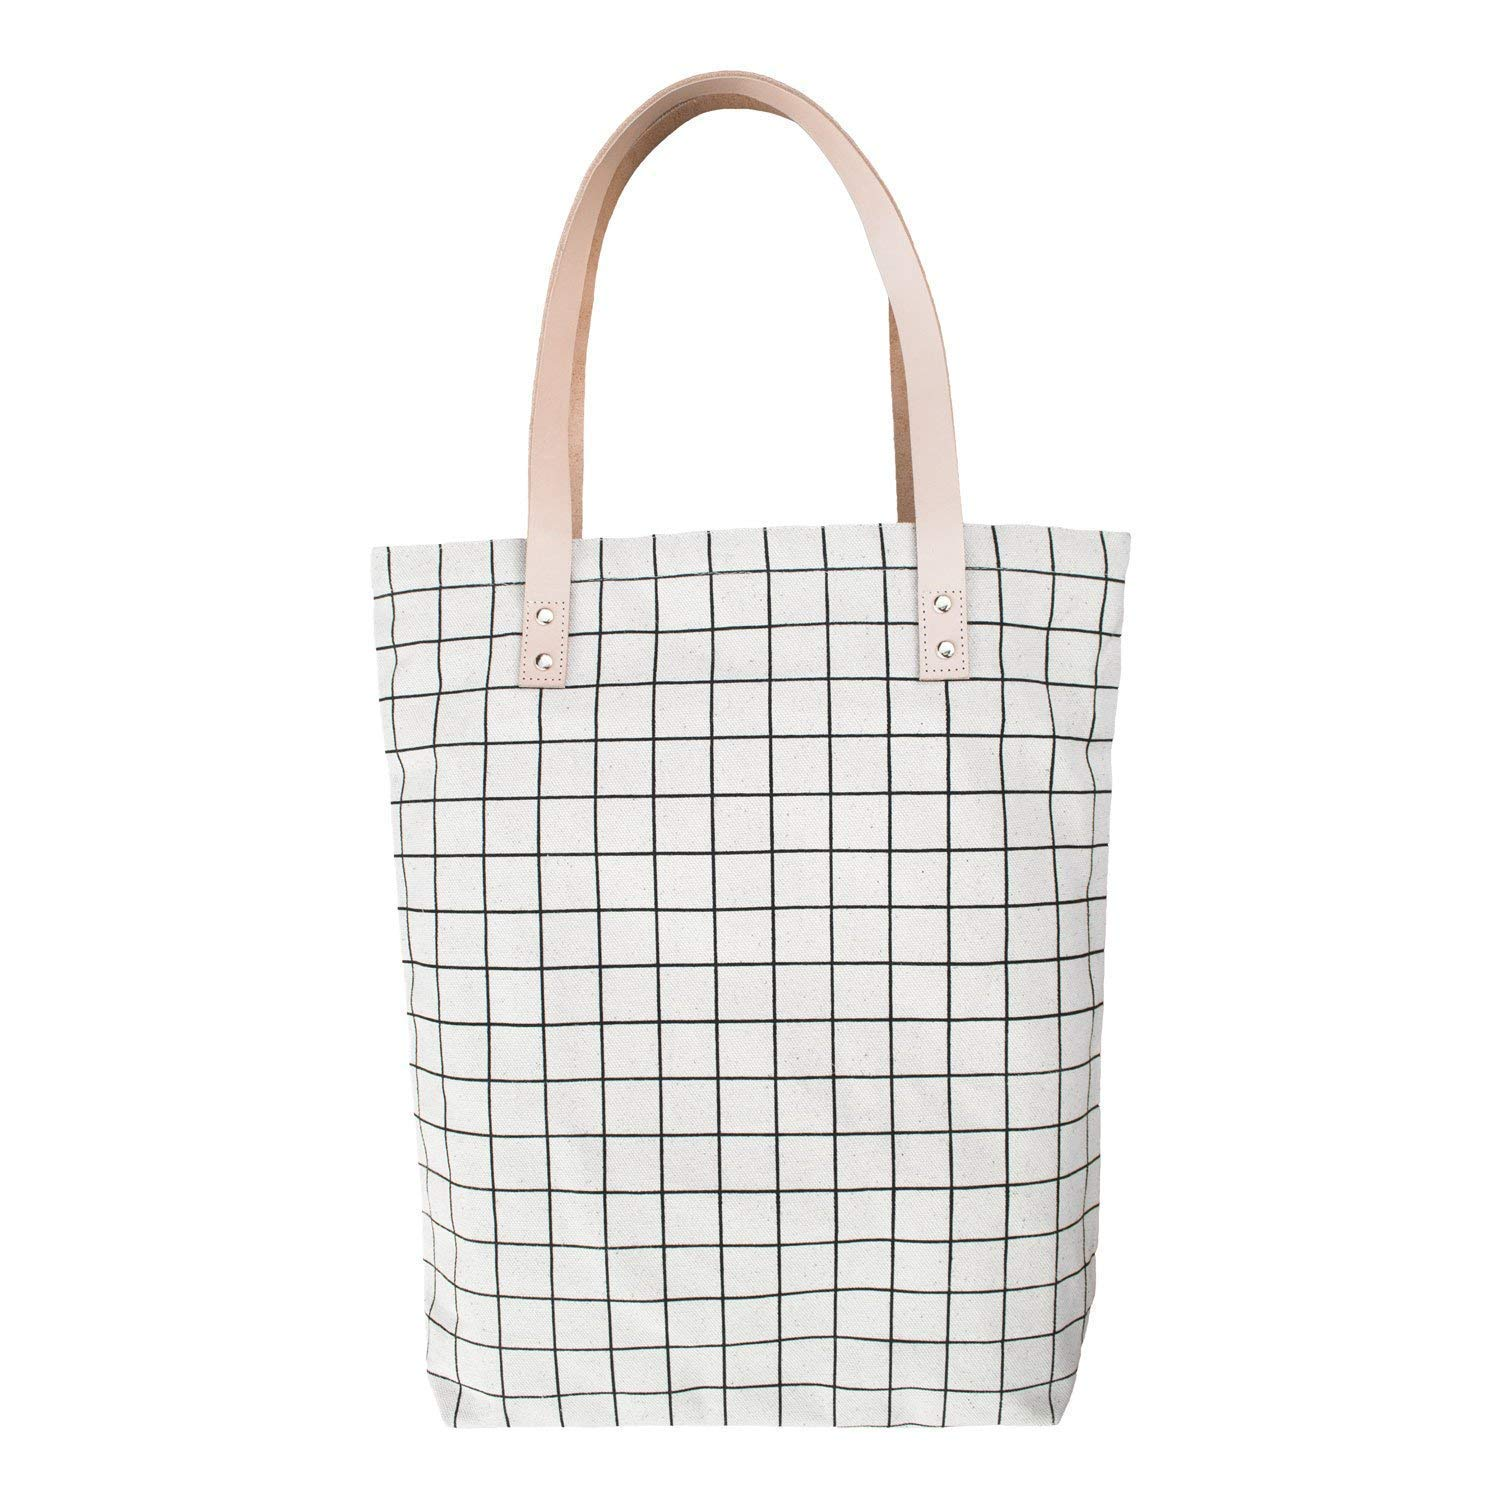 c3655f9a8817 Heavy Duty Canvas Tote Bag Black Lines Design - Leather Straps and Zipper.  36.0. Women s Heavy Duty Canvas Tote Bag DOIOWN Canvas Shoulder Bag Work ...